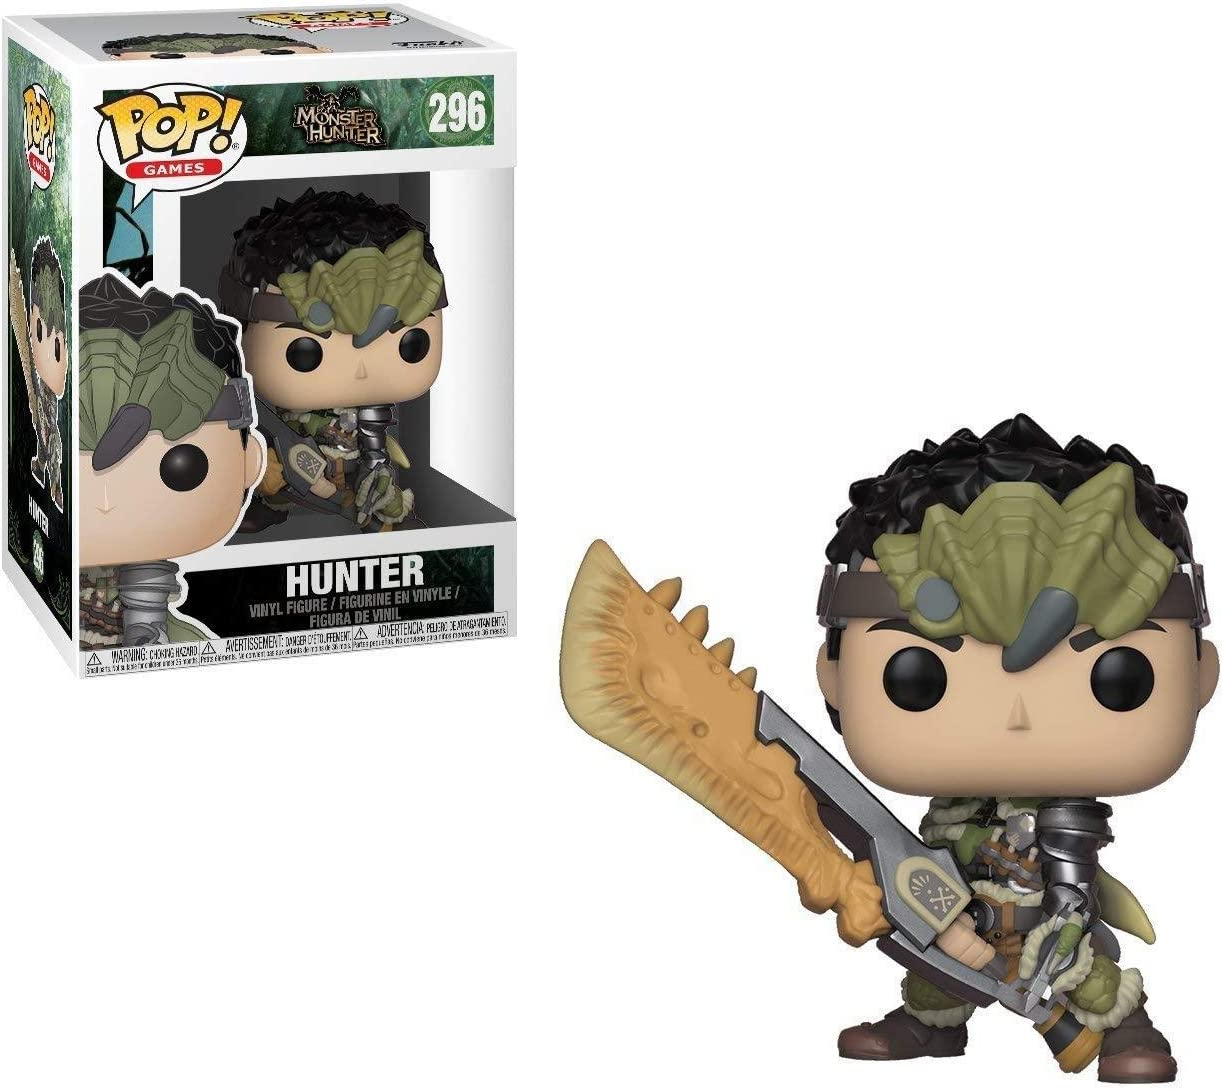 Funko Pop!- Games: Monster Hunters Male Figura de Vinilo (27344): Amazon.es: Juguetes y juegos